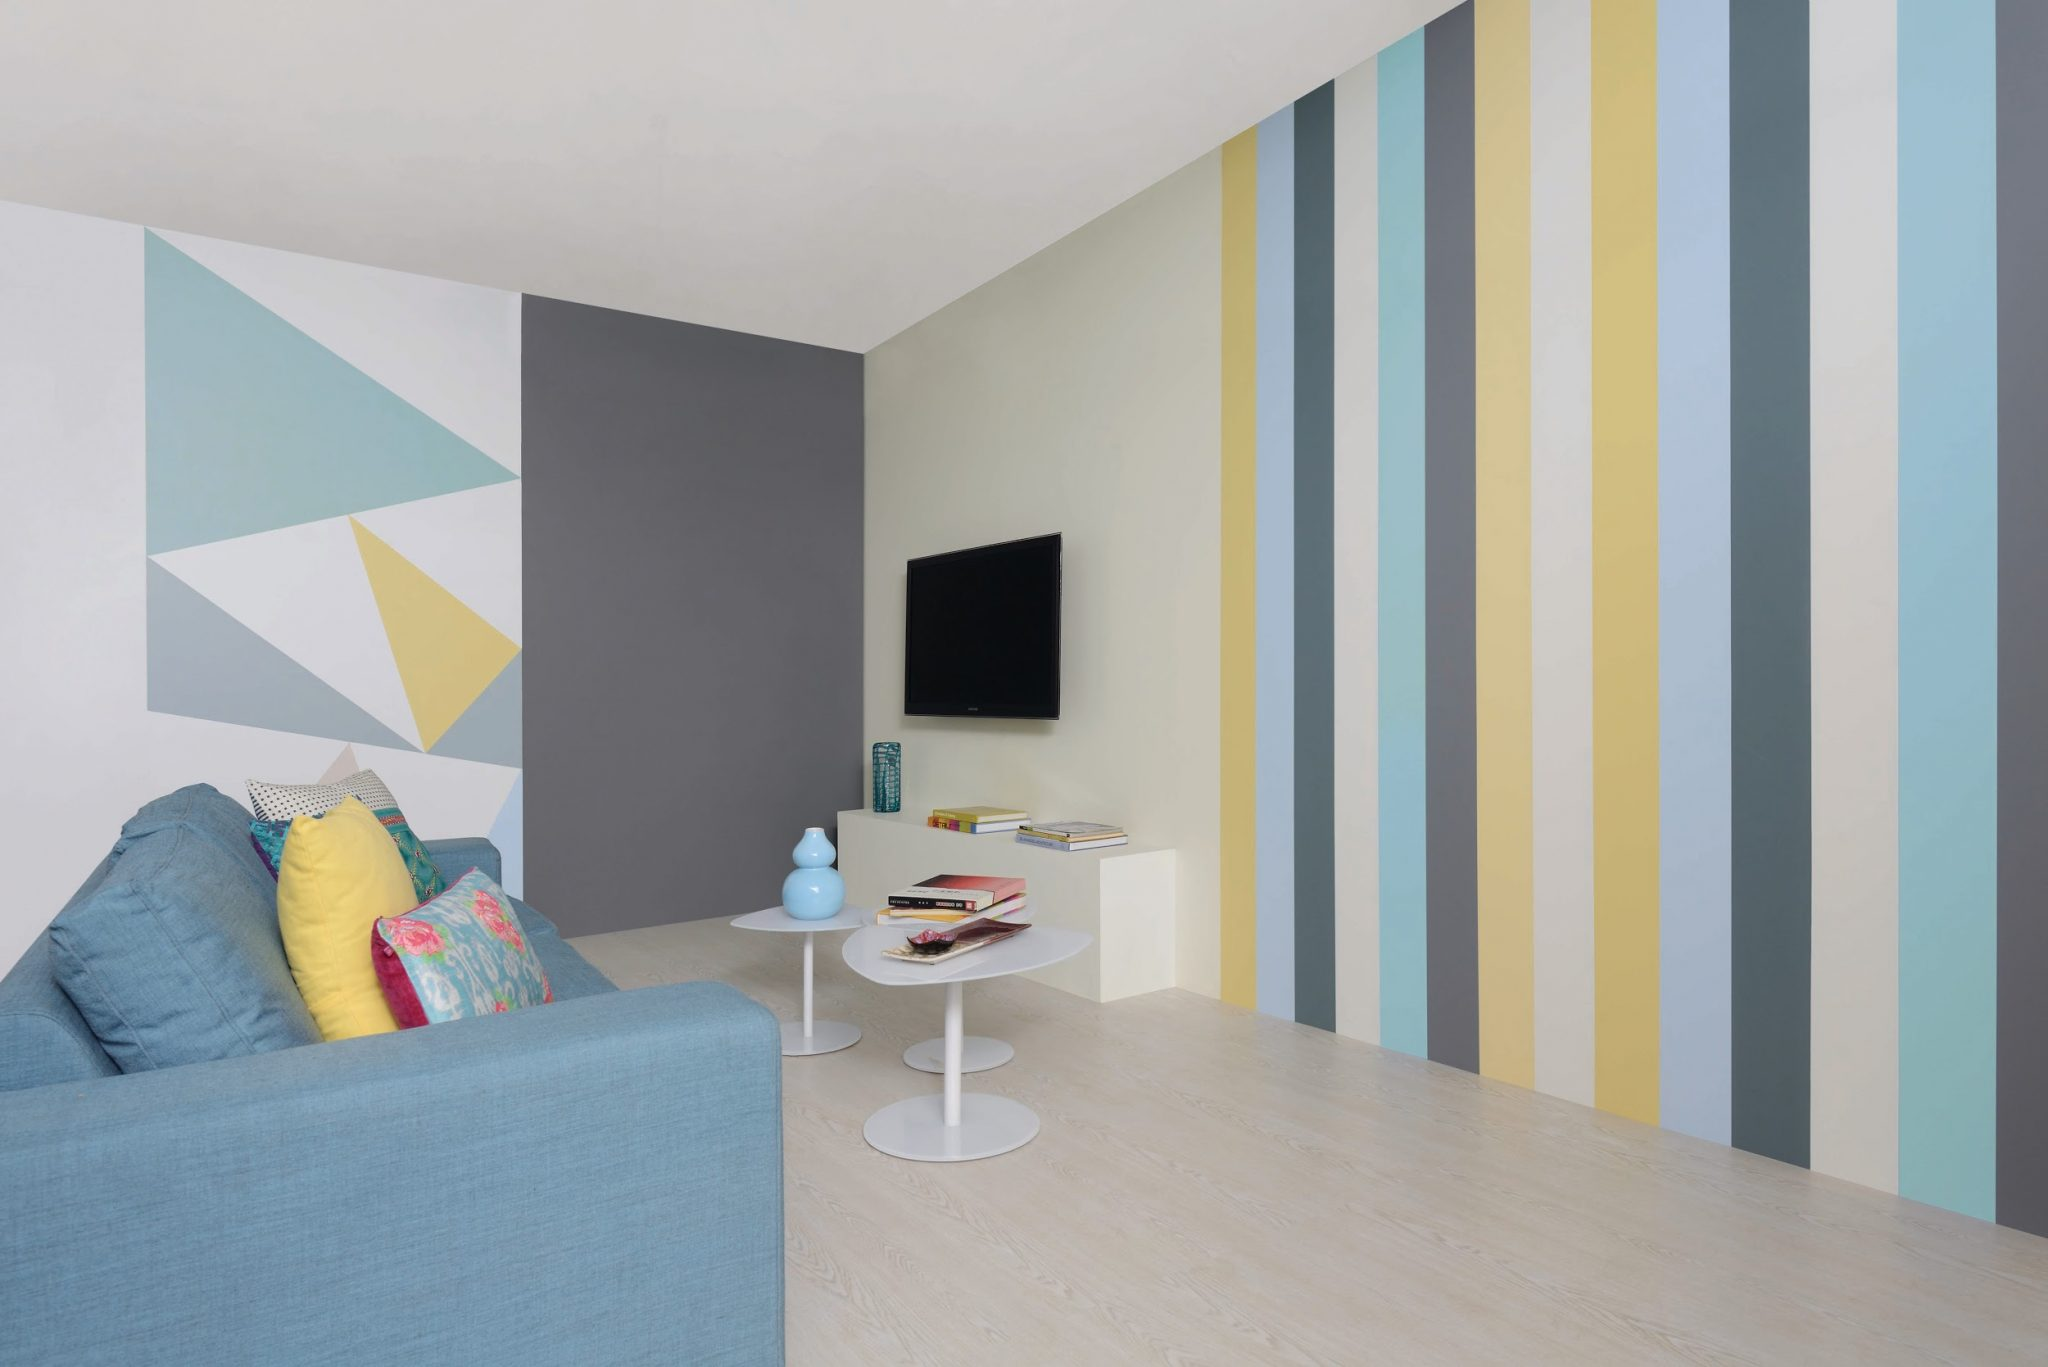 20 Bedroom Color Ideas to Make Your Room Awesome - Houseminds